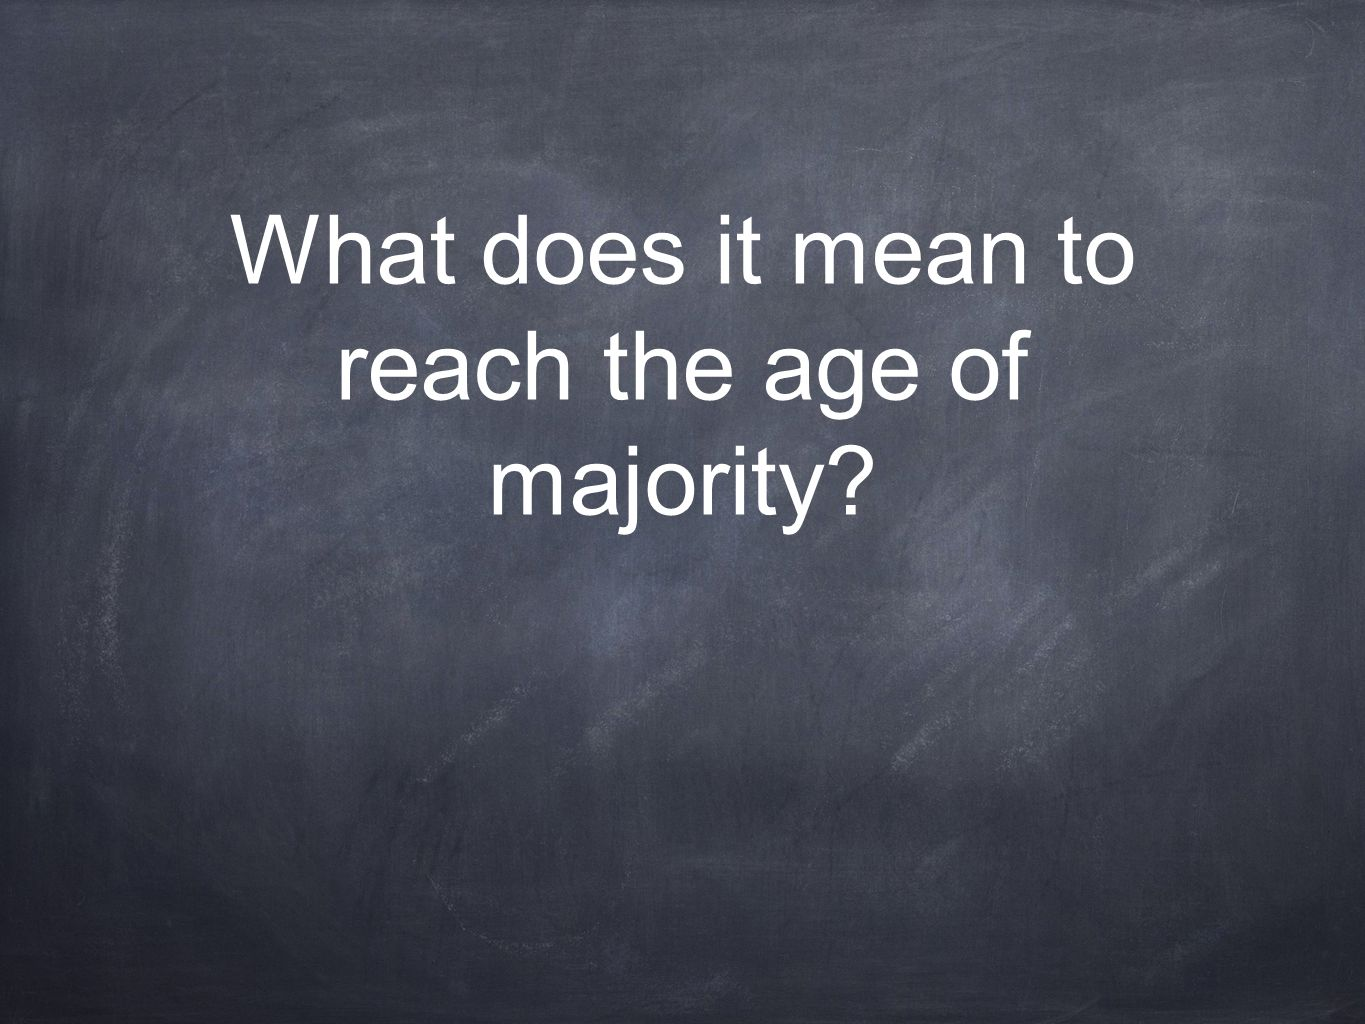 What does it mean to reach the age of majority